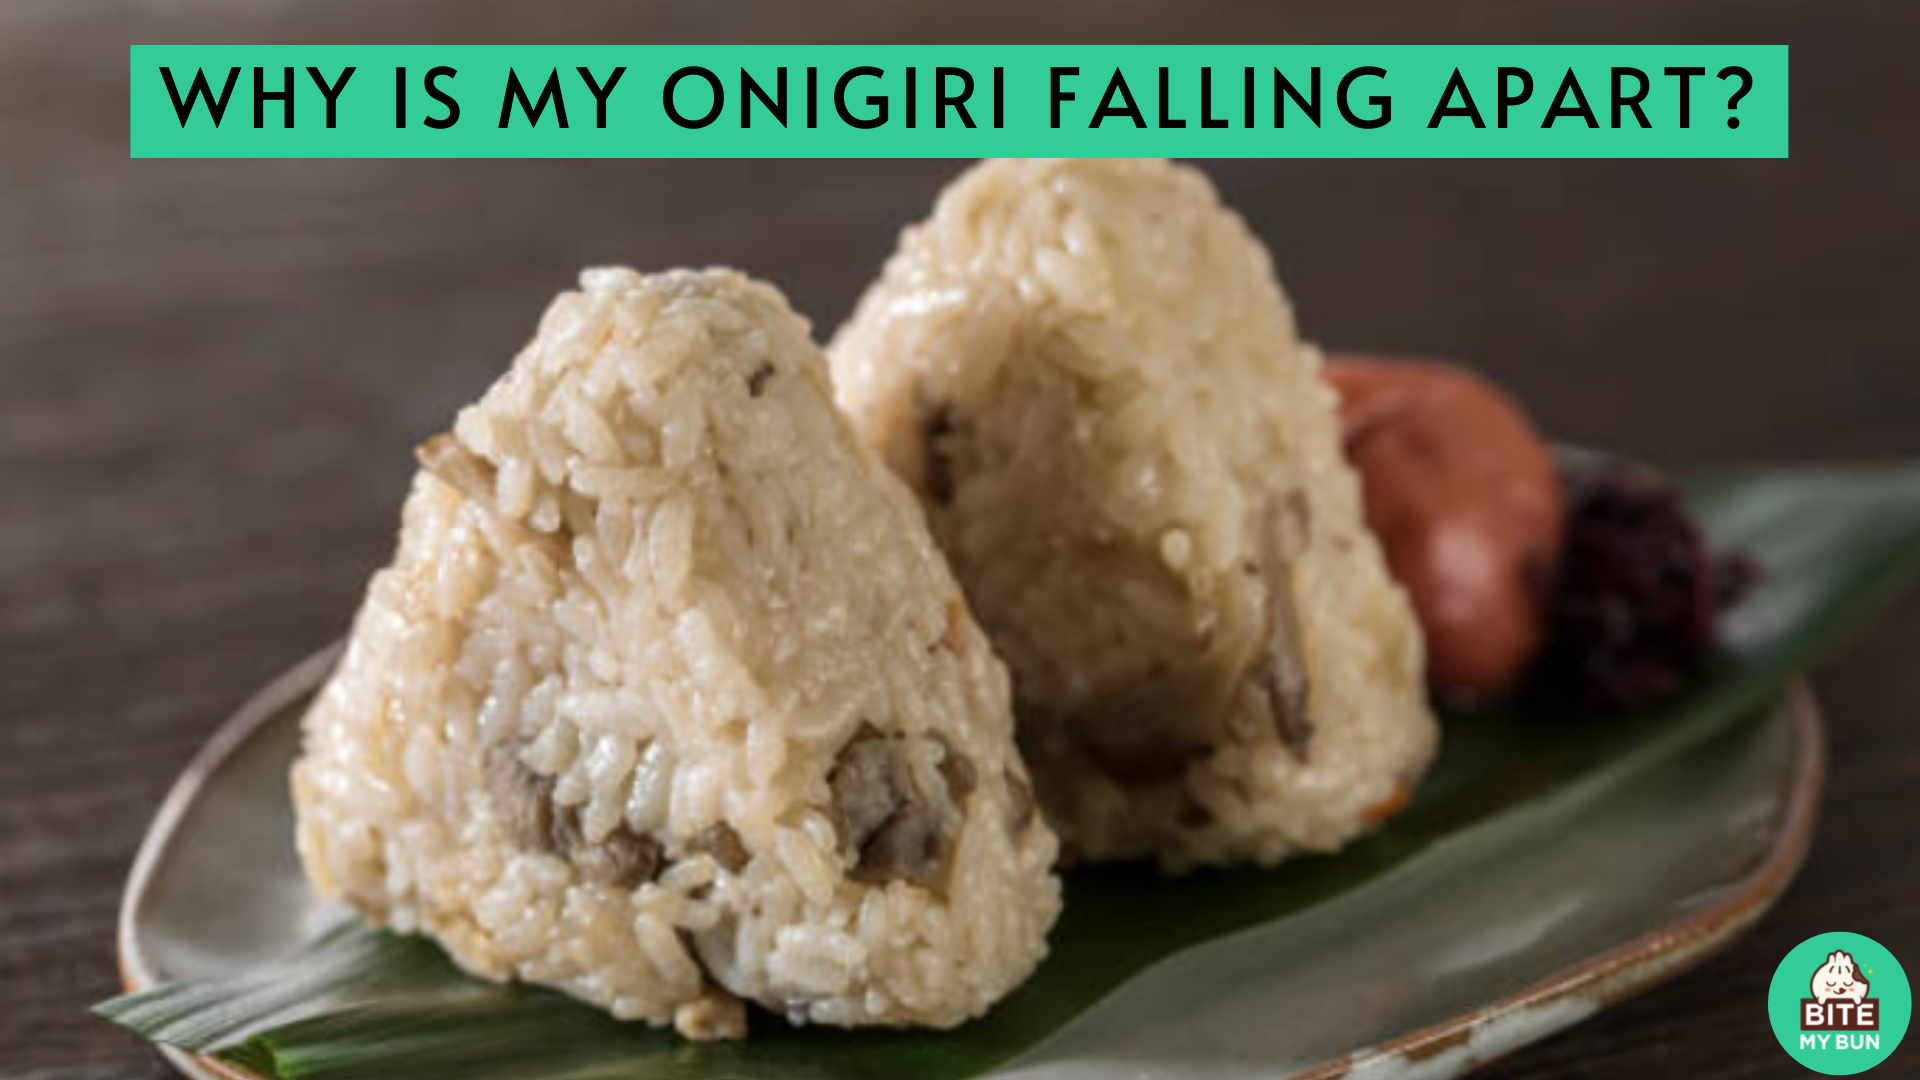 Why is my onigiri falling apart? These are the possible reasons